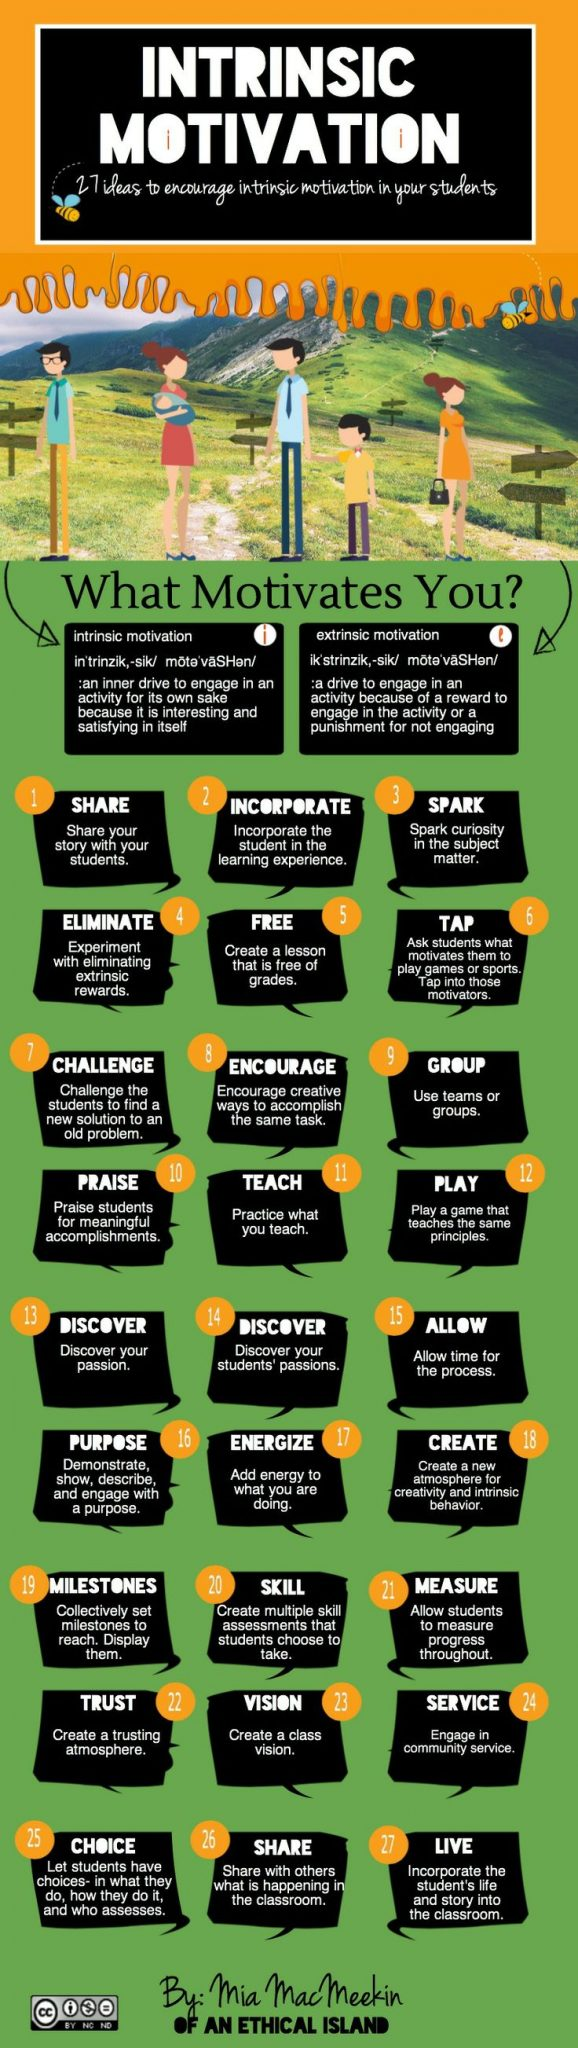 ways to promote intrinsic motivation in the classroom